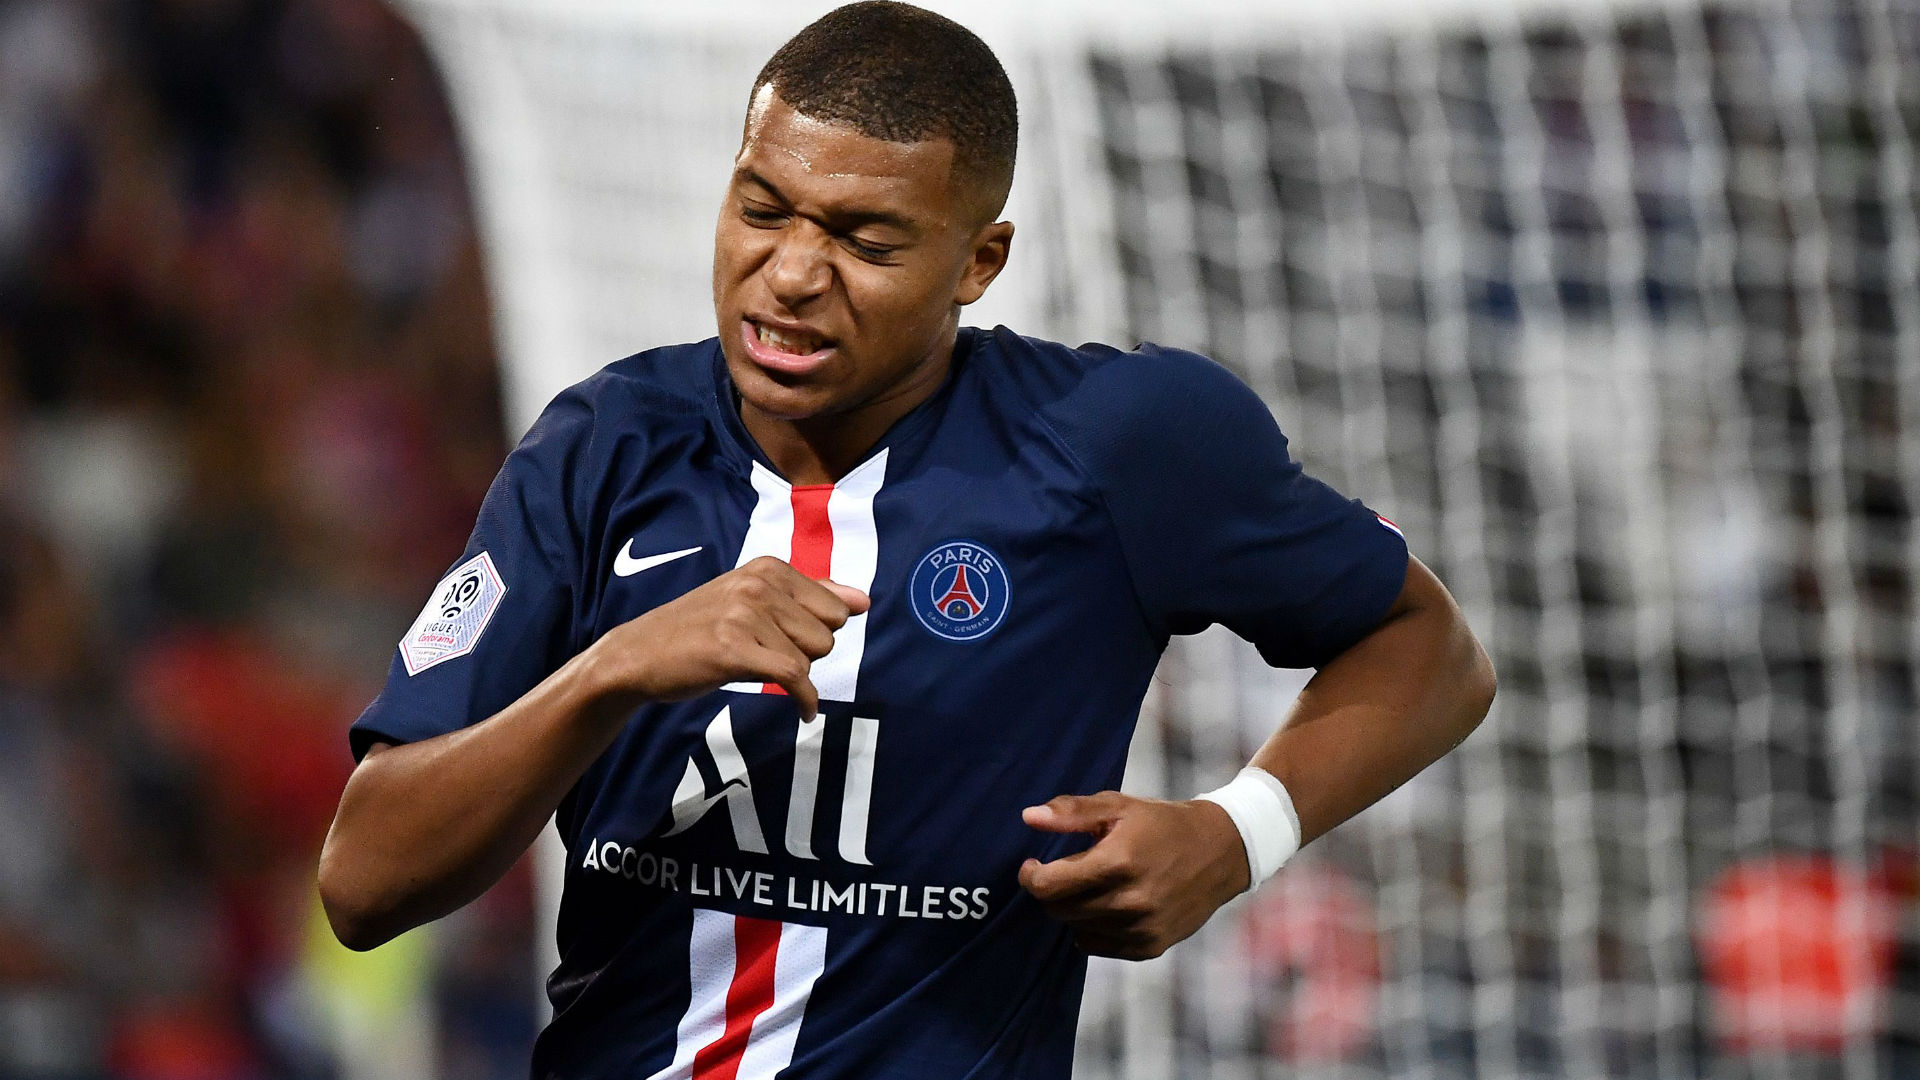 'He is more mature' - Mbappe a 'real killer' for PSG, says Diallo